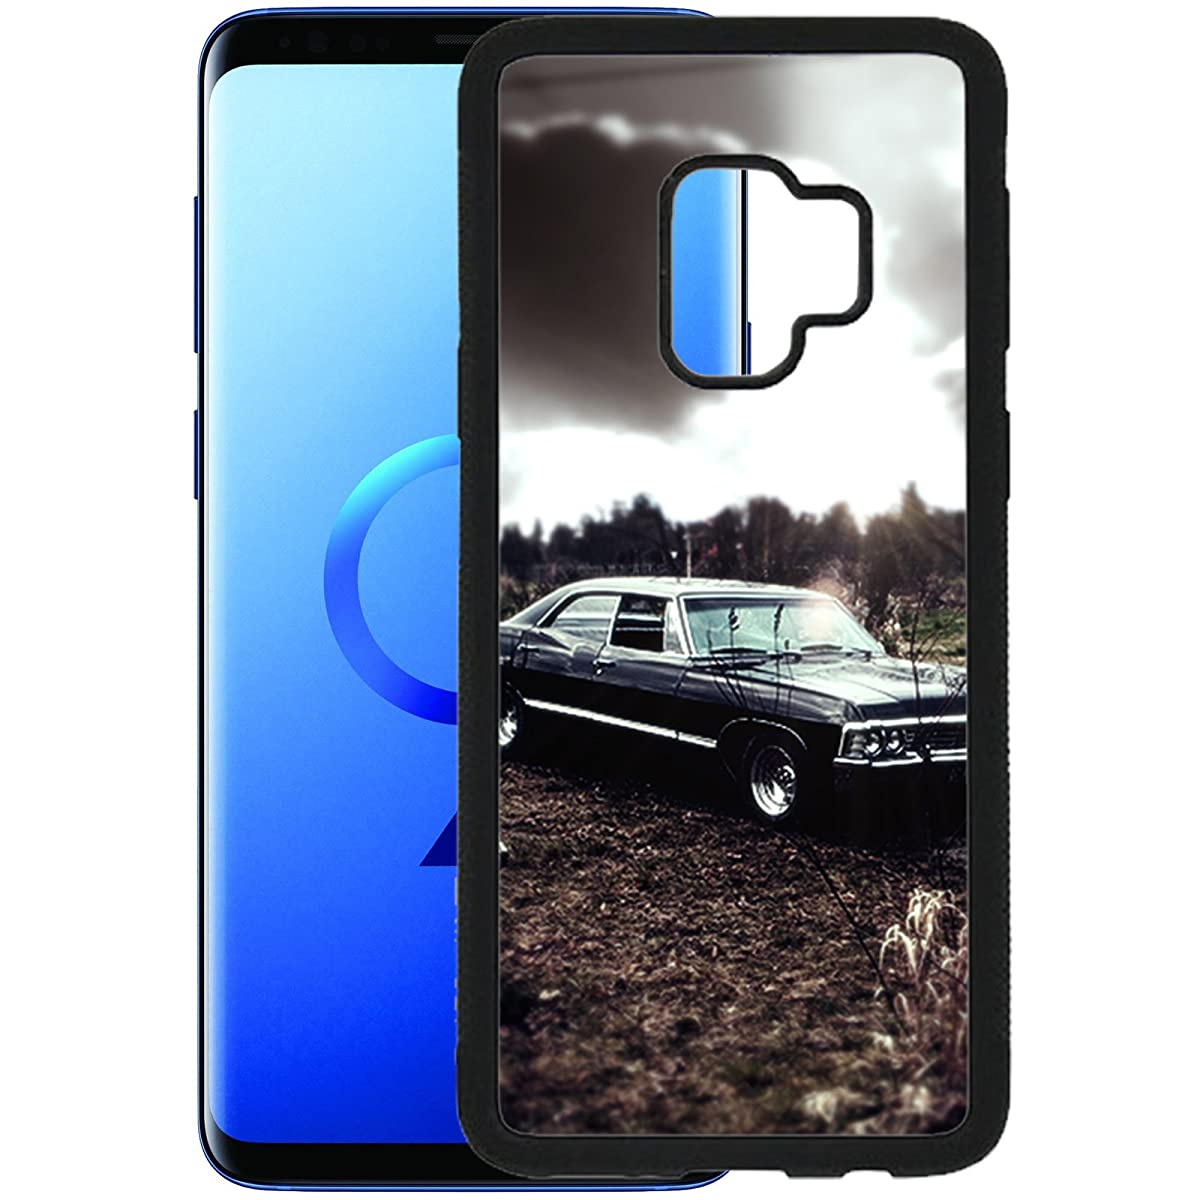 Supernatural TV Show Mobile Phone Case for Samsung Galaxy S7 SN06